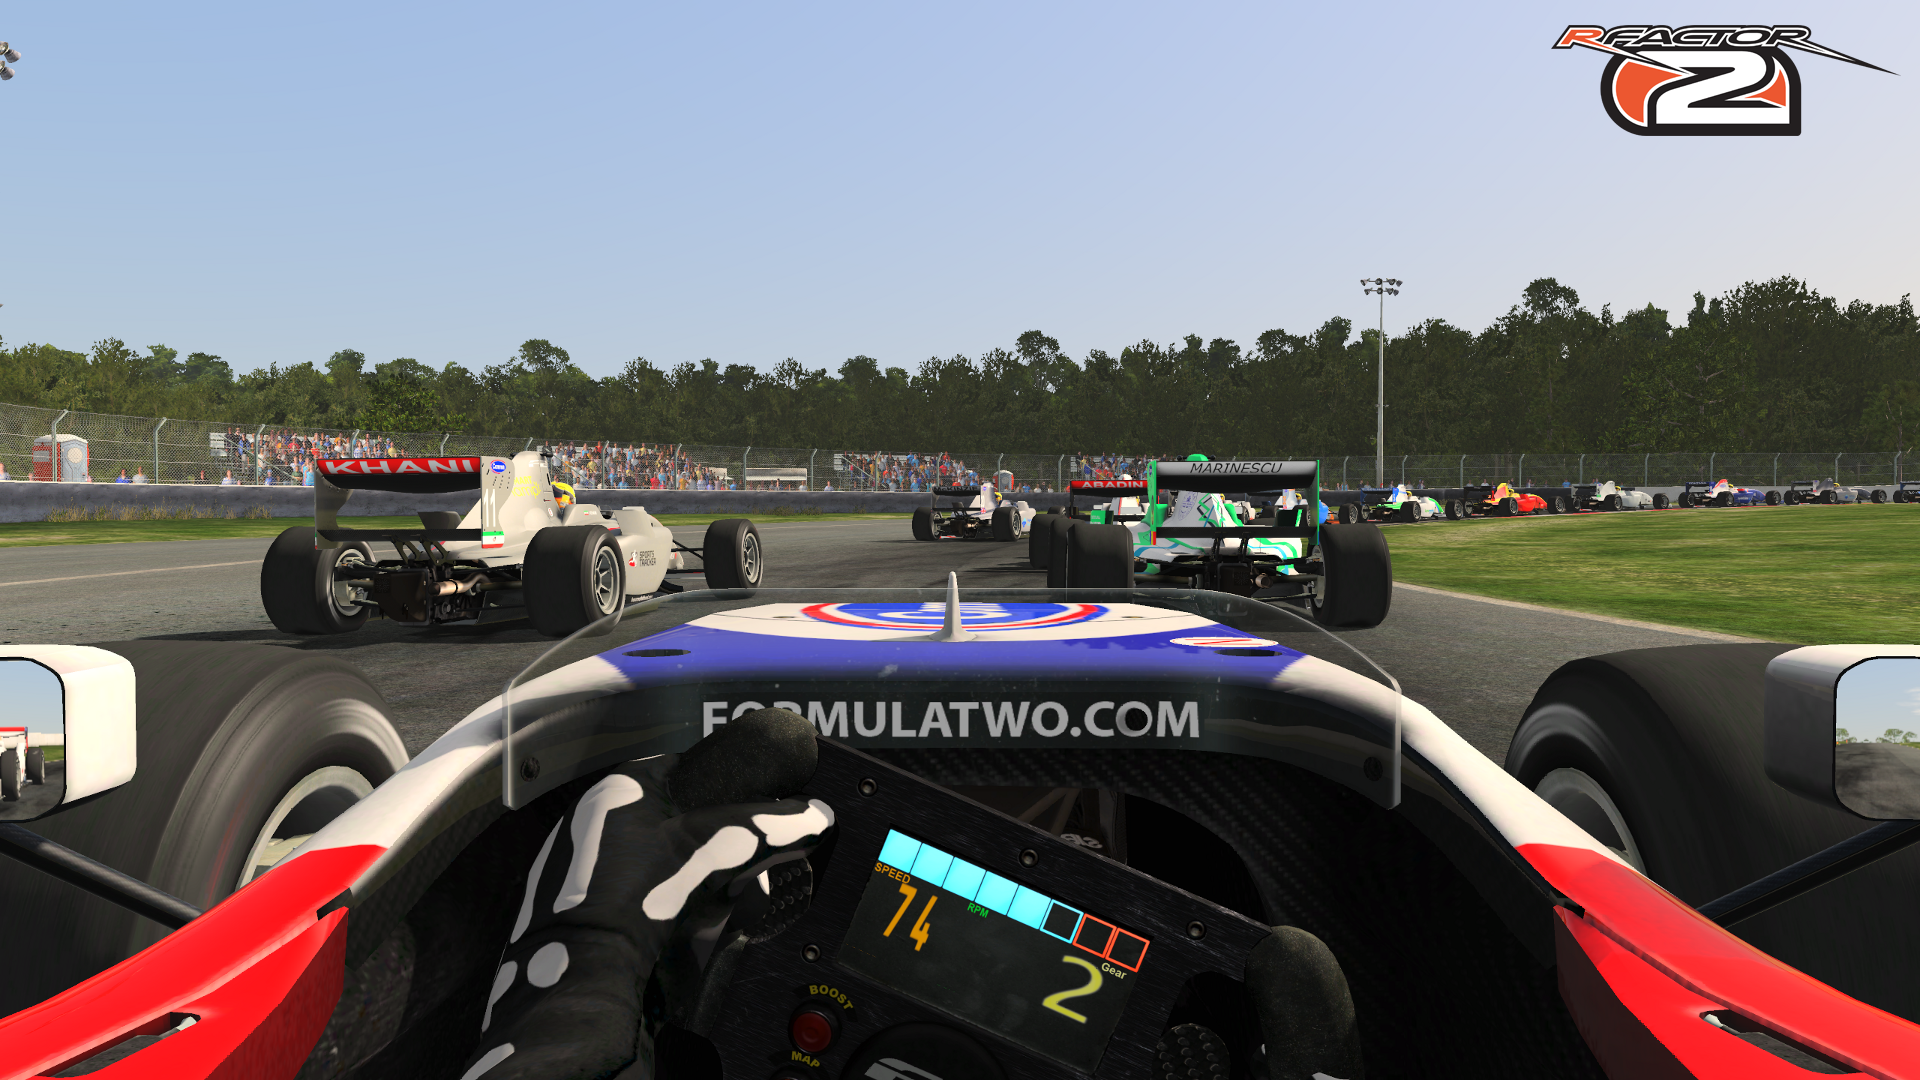 White Tire Paint >> rFactor 2 – Formula Two Car Released – VirtualR.net – 100% Independent Sim Racing News